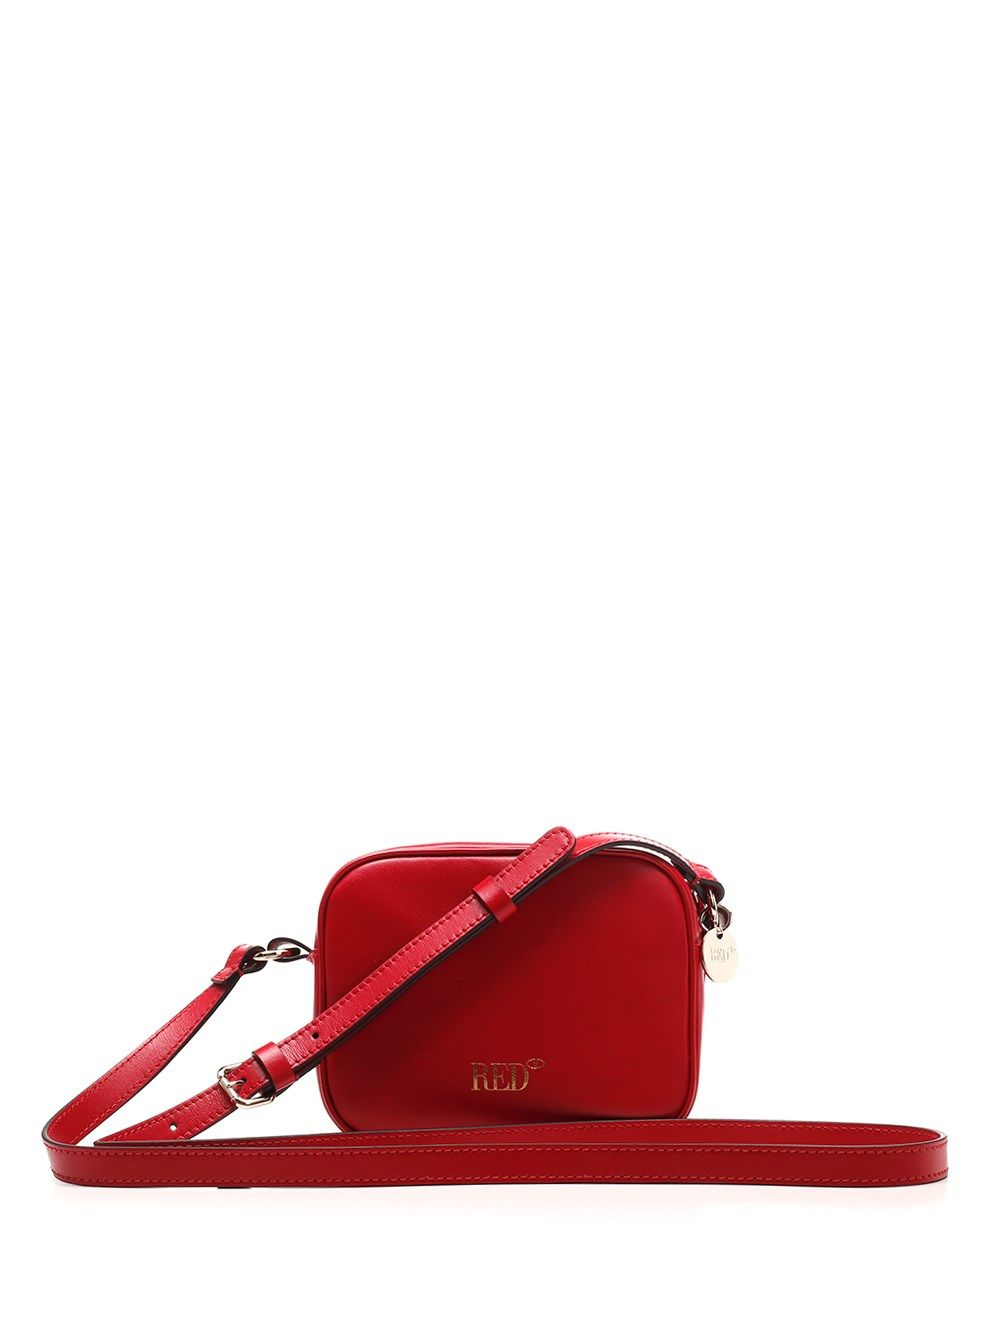 Red Valentino RED VALENTINO WOMEN'S VQ0B0C67FYIC61 RED OTHER MATERIALS SHOULDER BAG